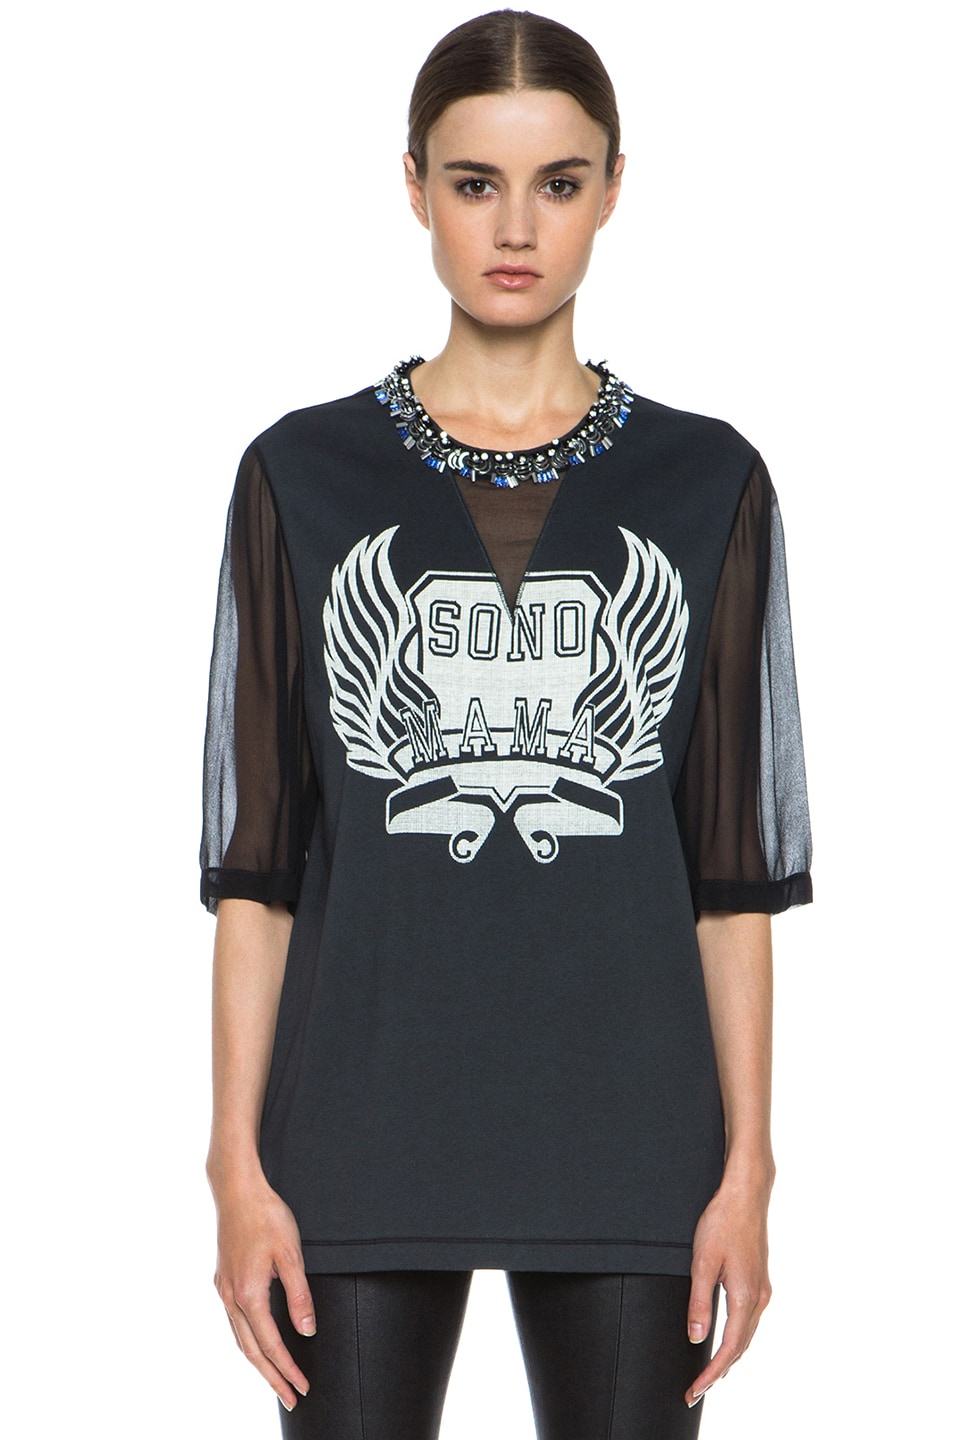 Image 1 of 3.1 phillip lim Sonomama Oversize Tee with Beaded Collar in Soft Black